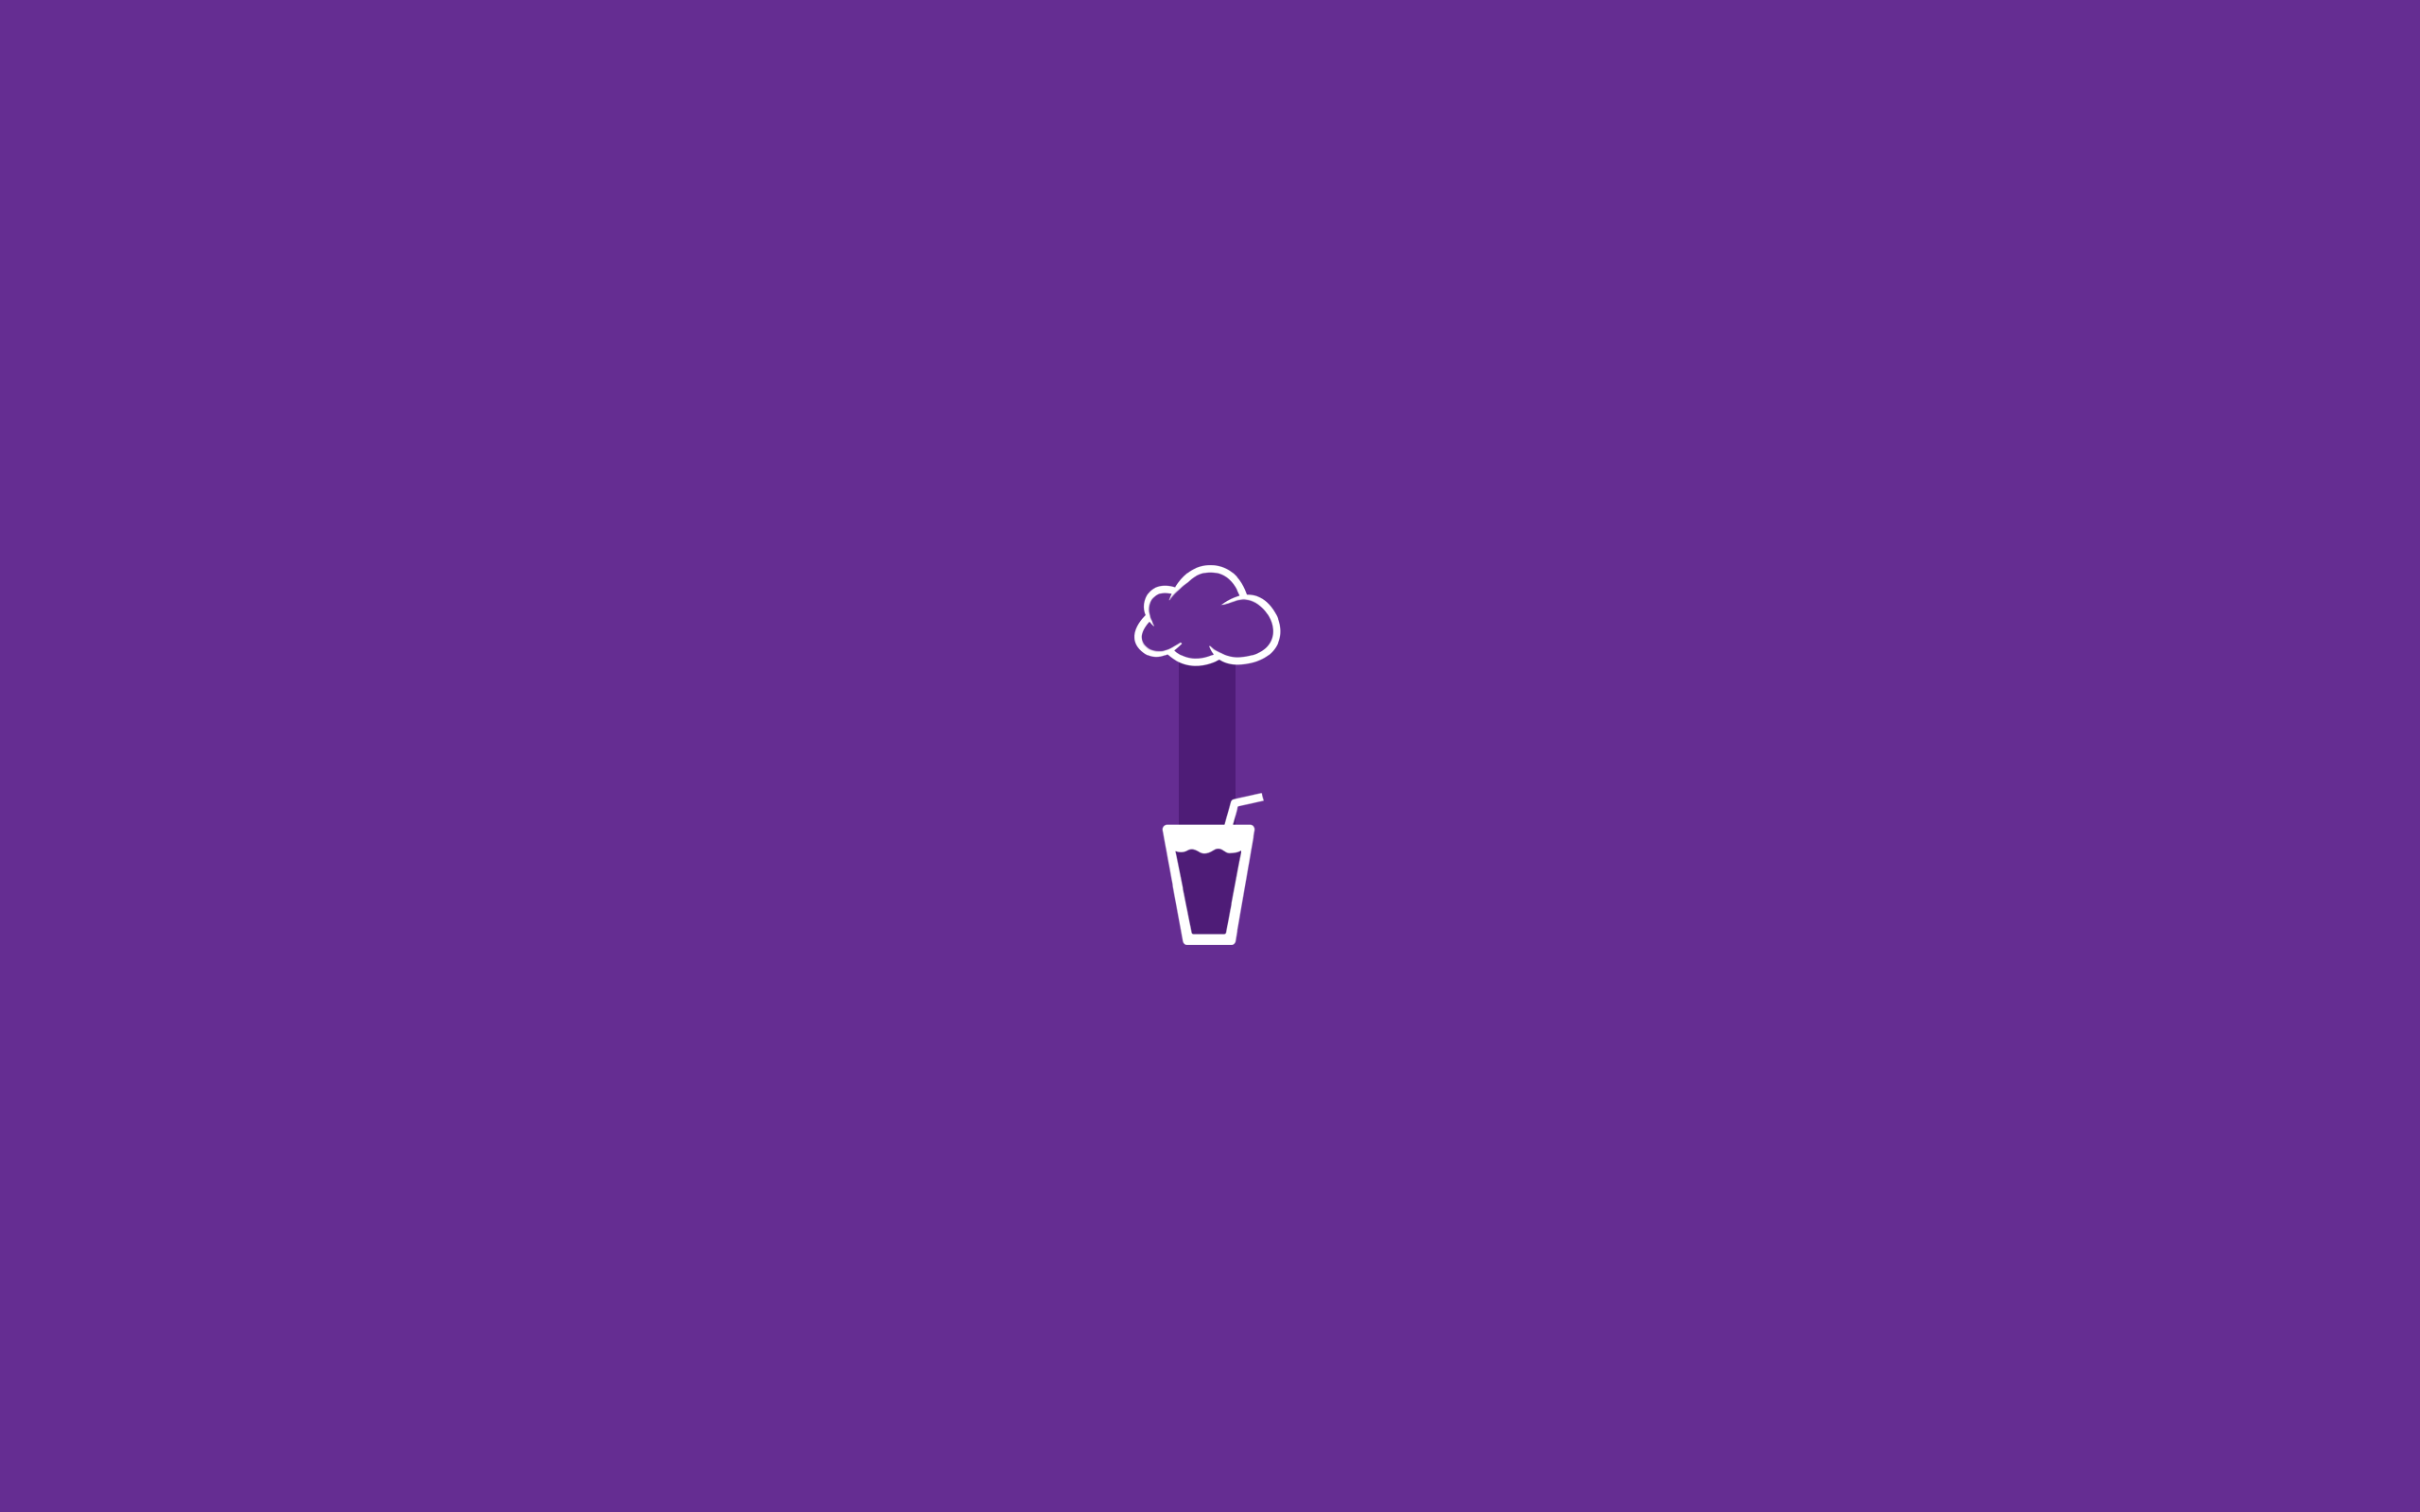 Purple Minimalist Aesthetic Laptop Wallpaper